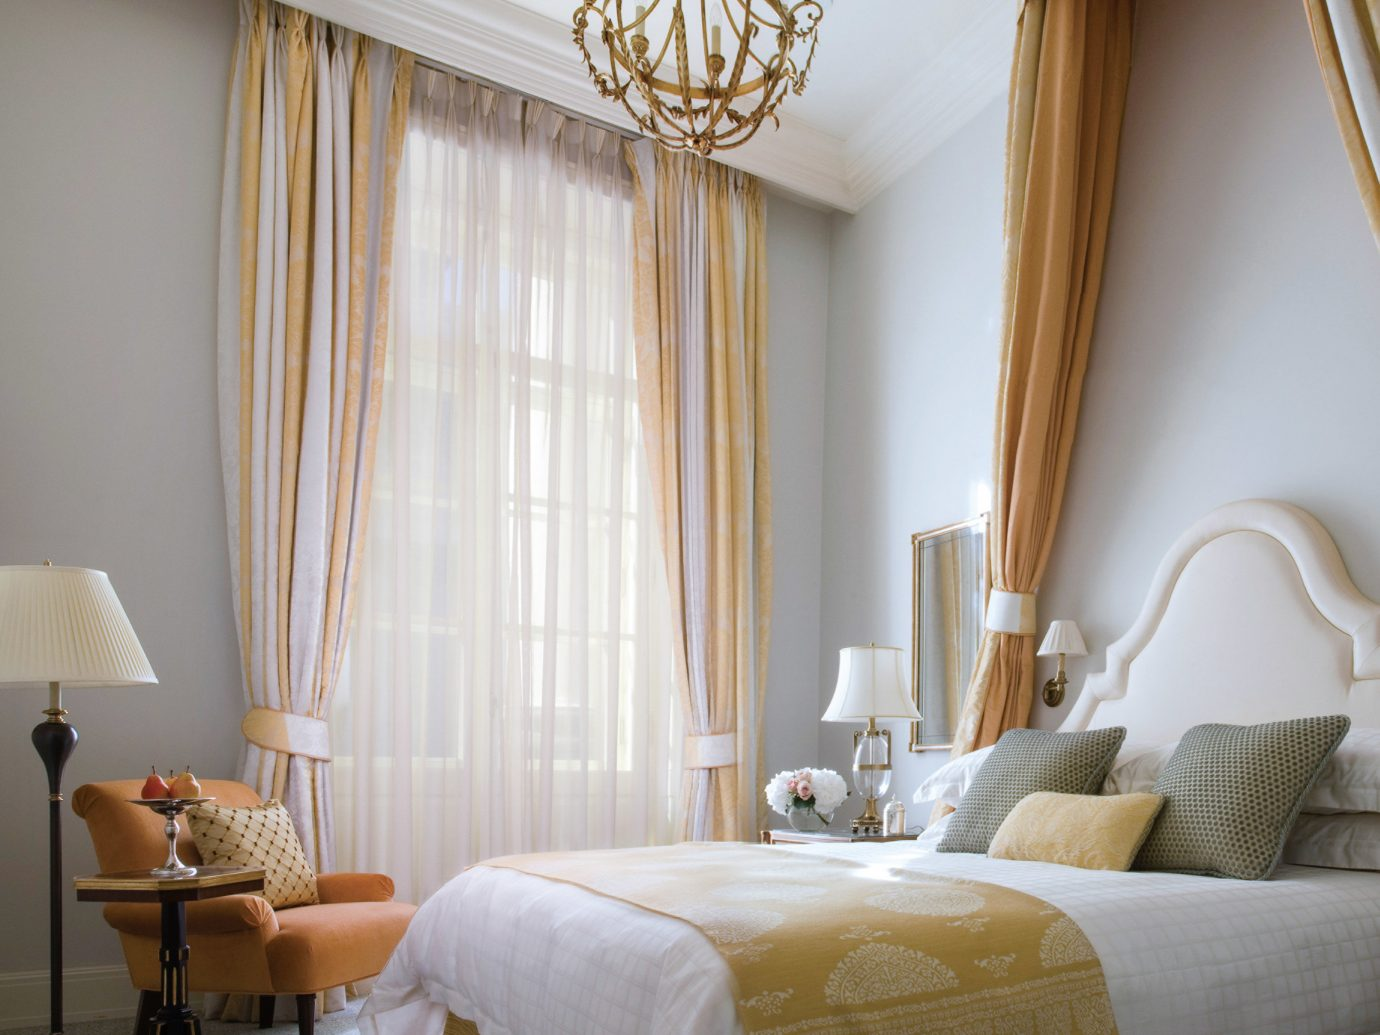 Hotels Luxury Travel wall indoor bed room ceiling Bedroom bed frame interior design window treatment curtain window covering hotel home window Suite textile furniture living room window blind bed sheet four poster mattress bedding interior designer decor